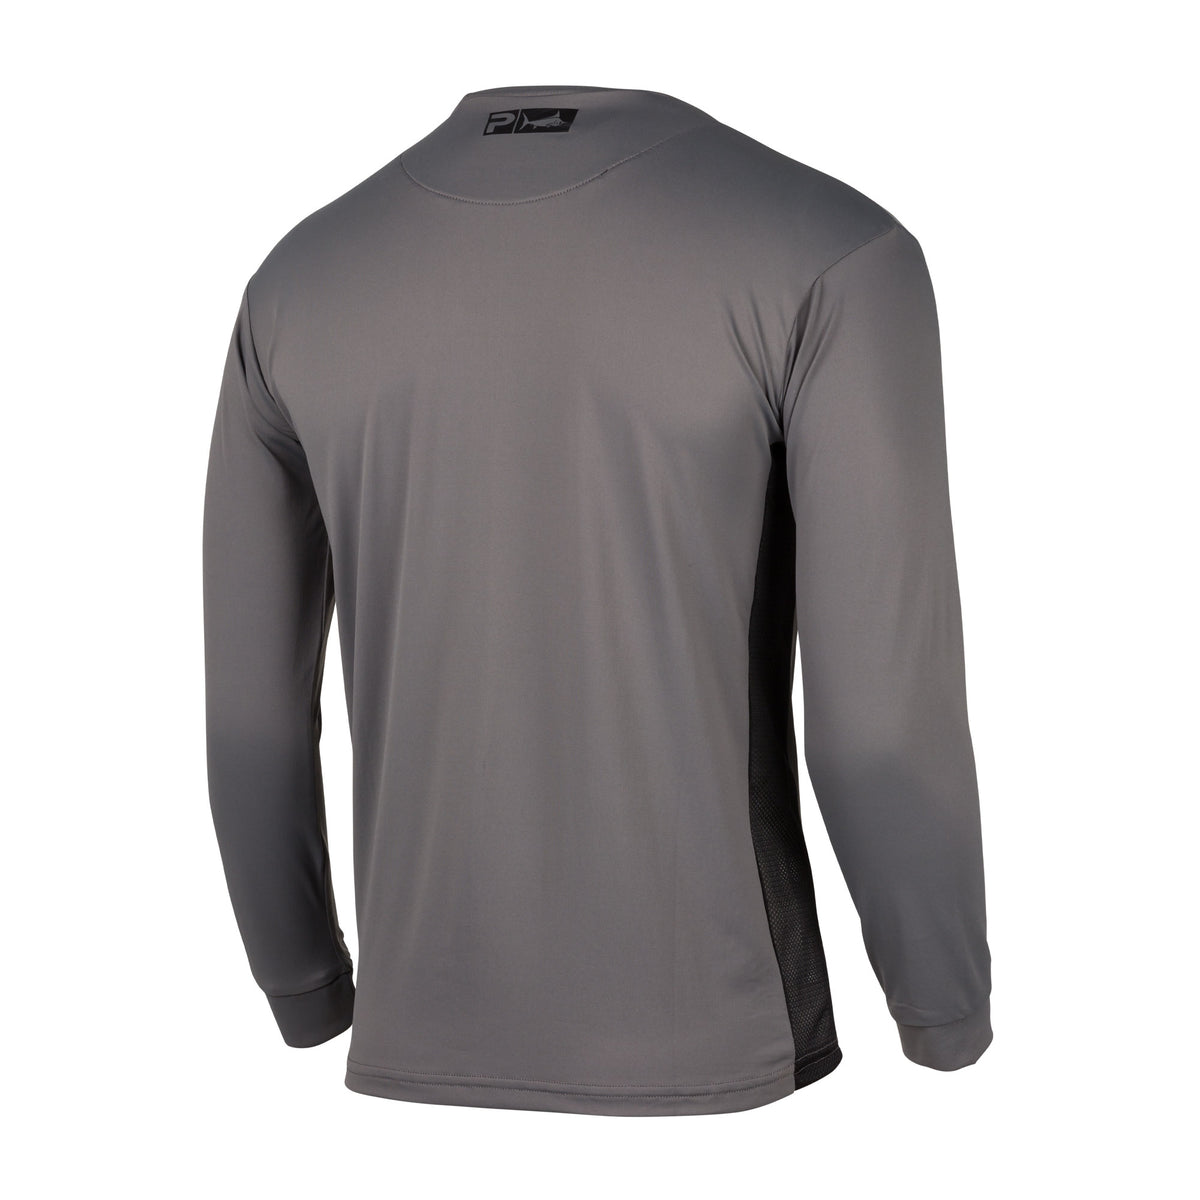 Aquatek Pro Performance Shirt Big Image - 2